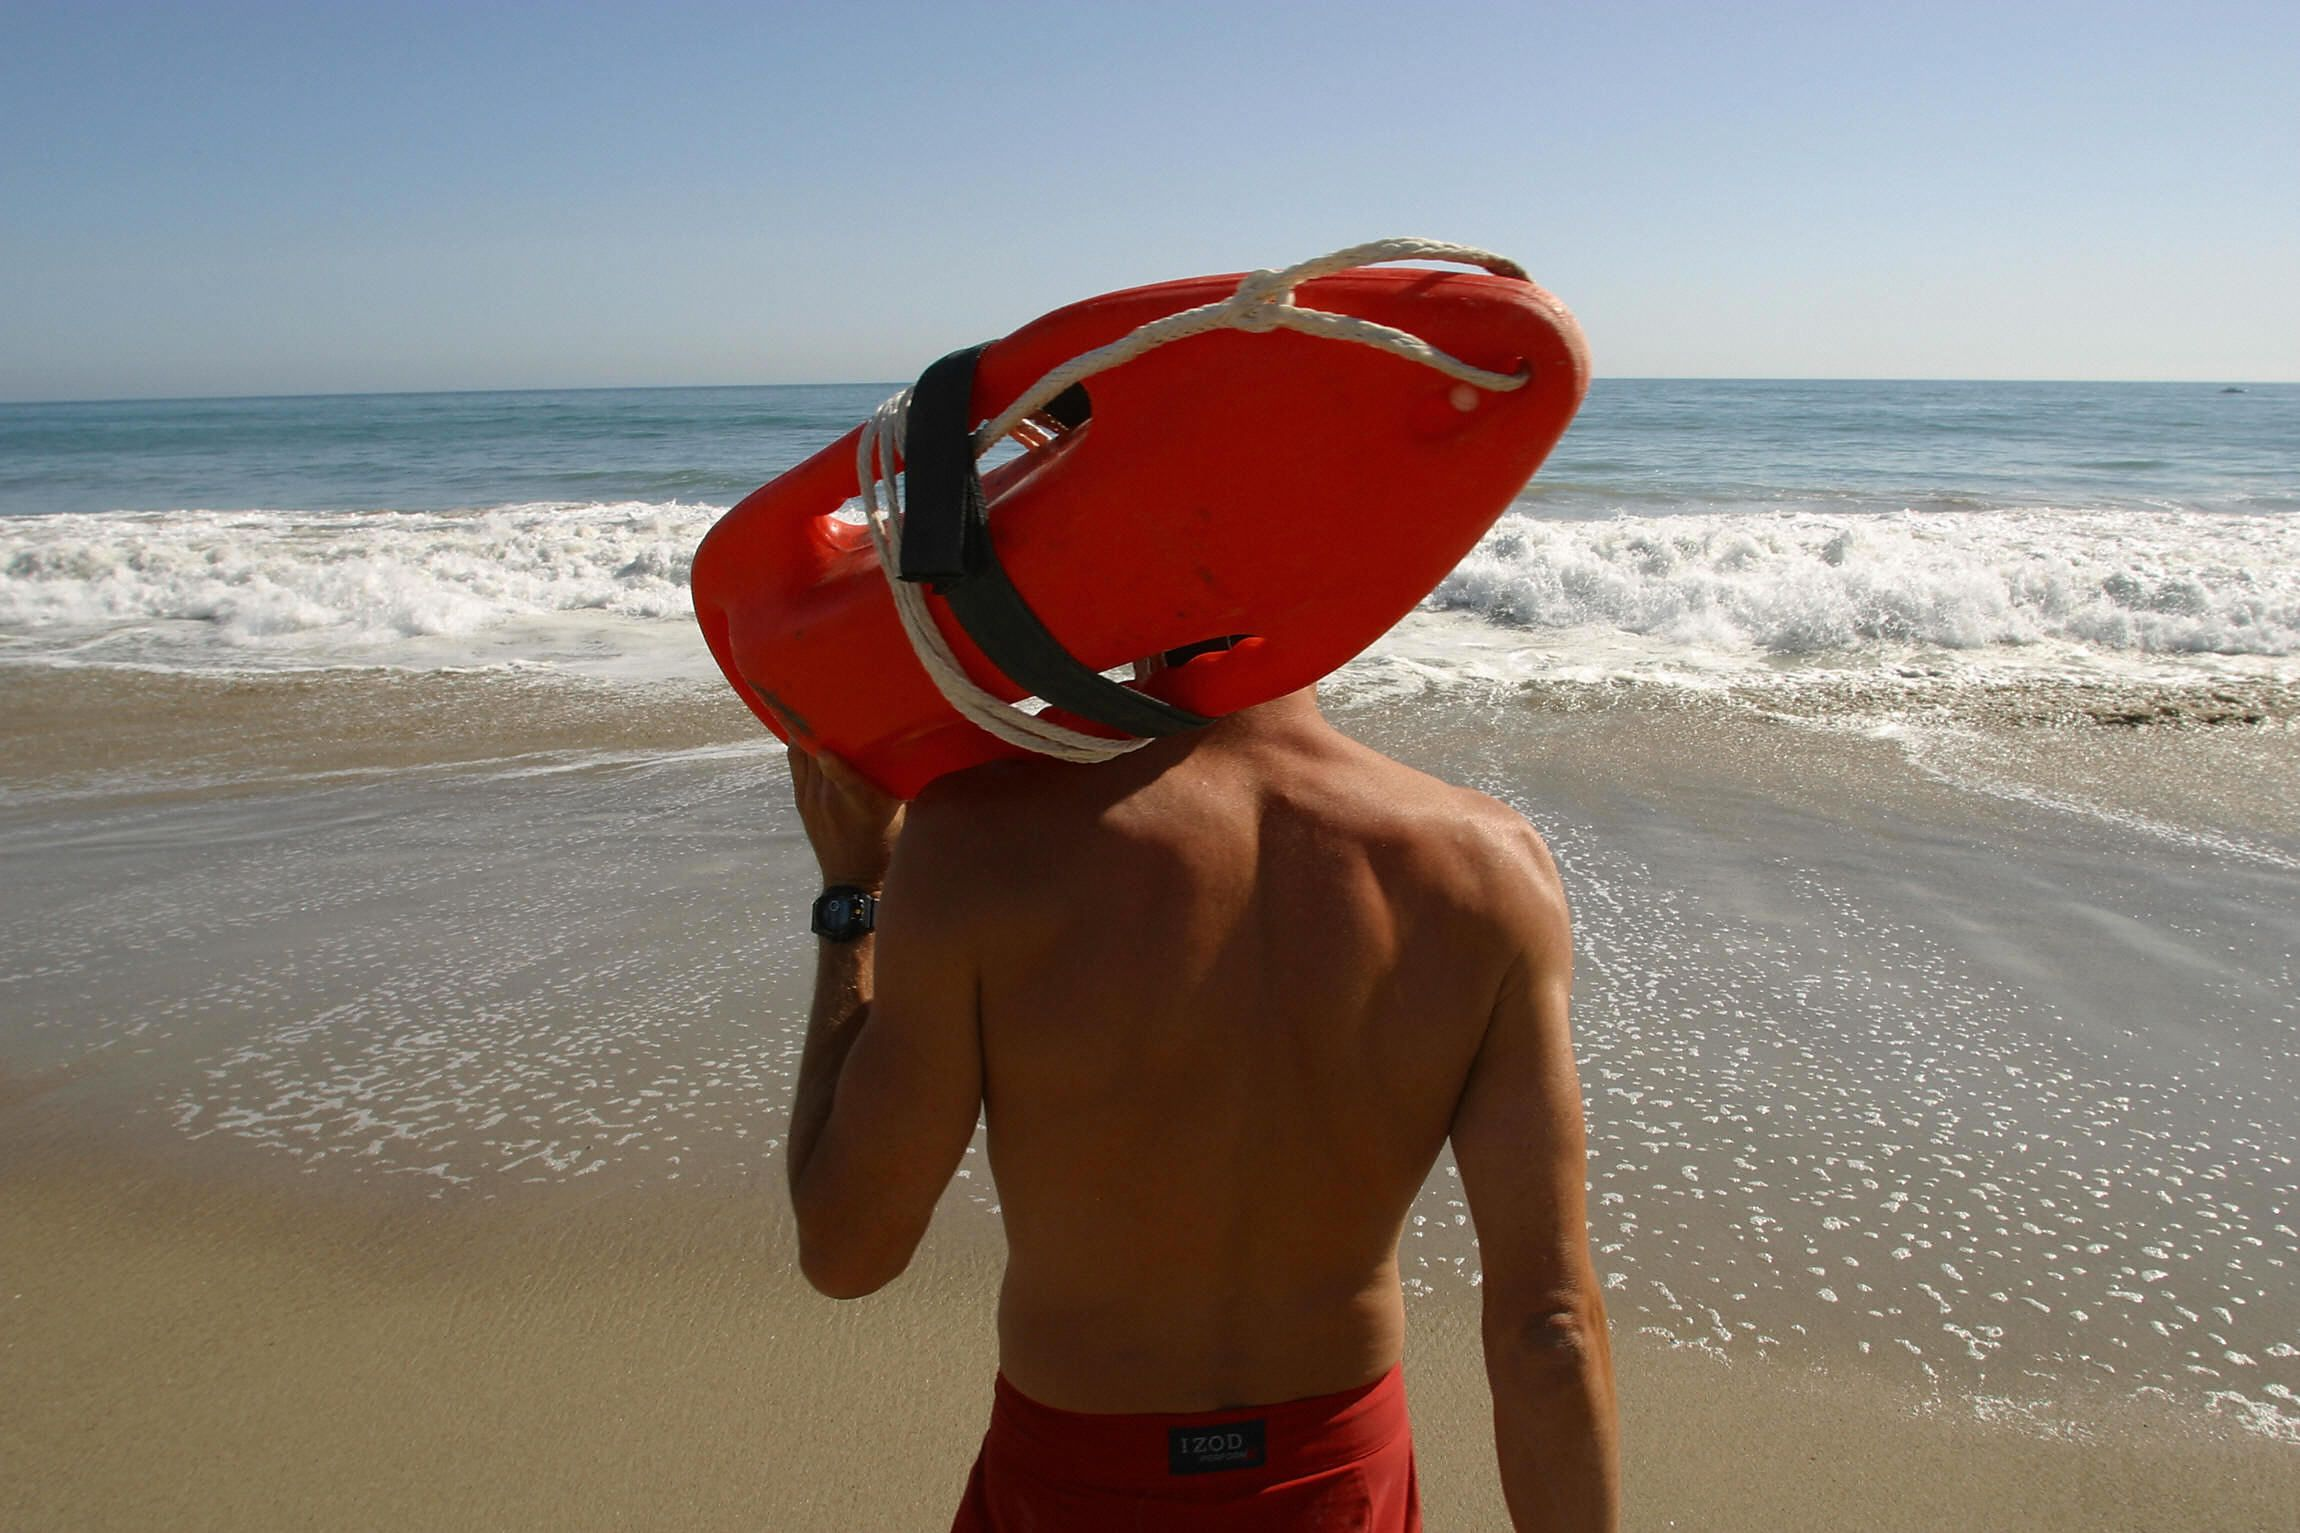 Beach Lifeguard On Patrol Stock Photo - Download Image Now